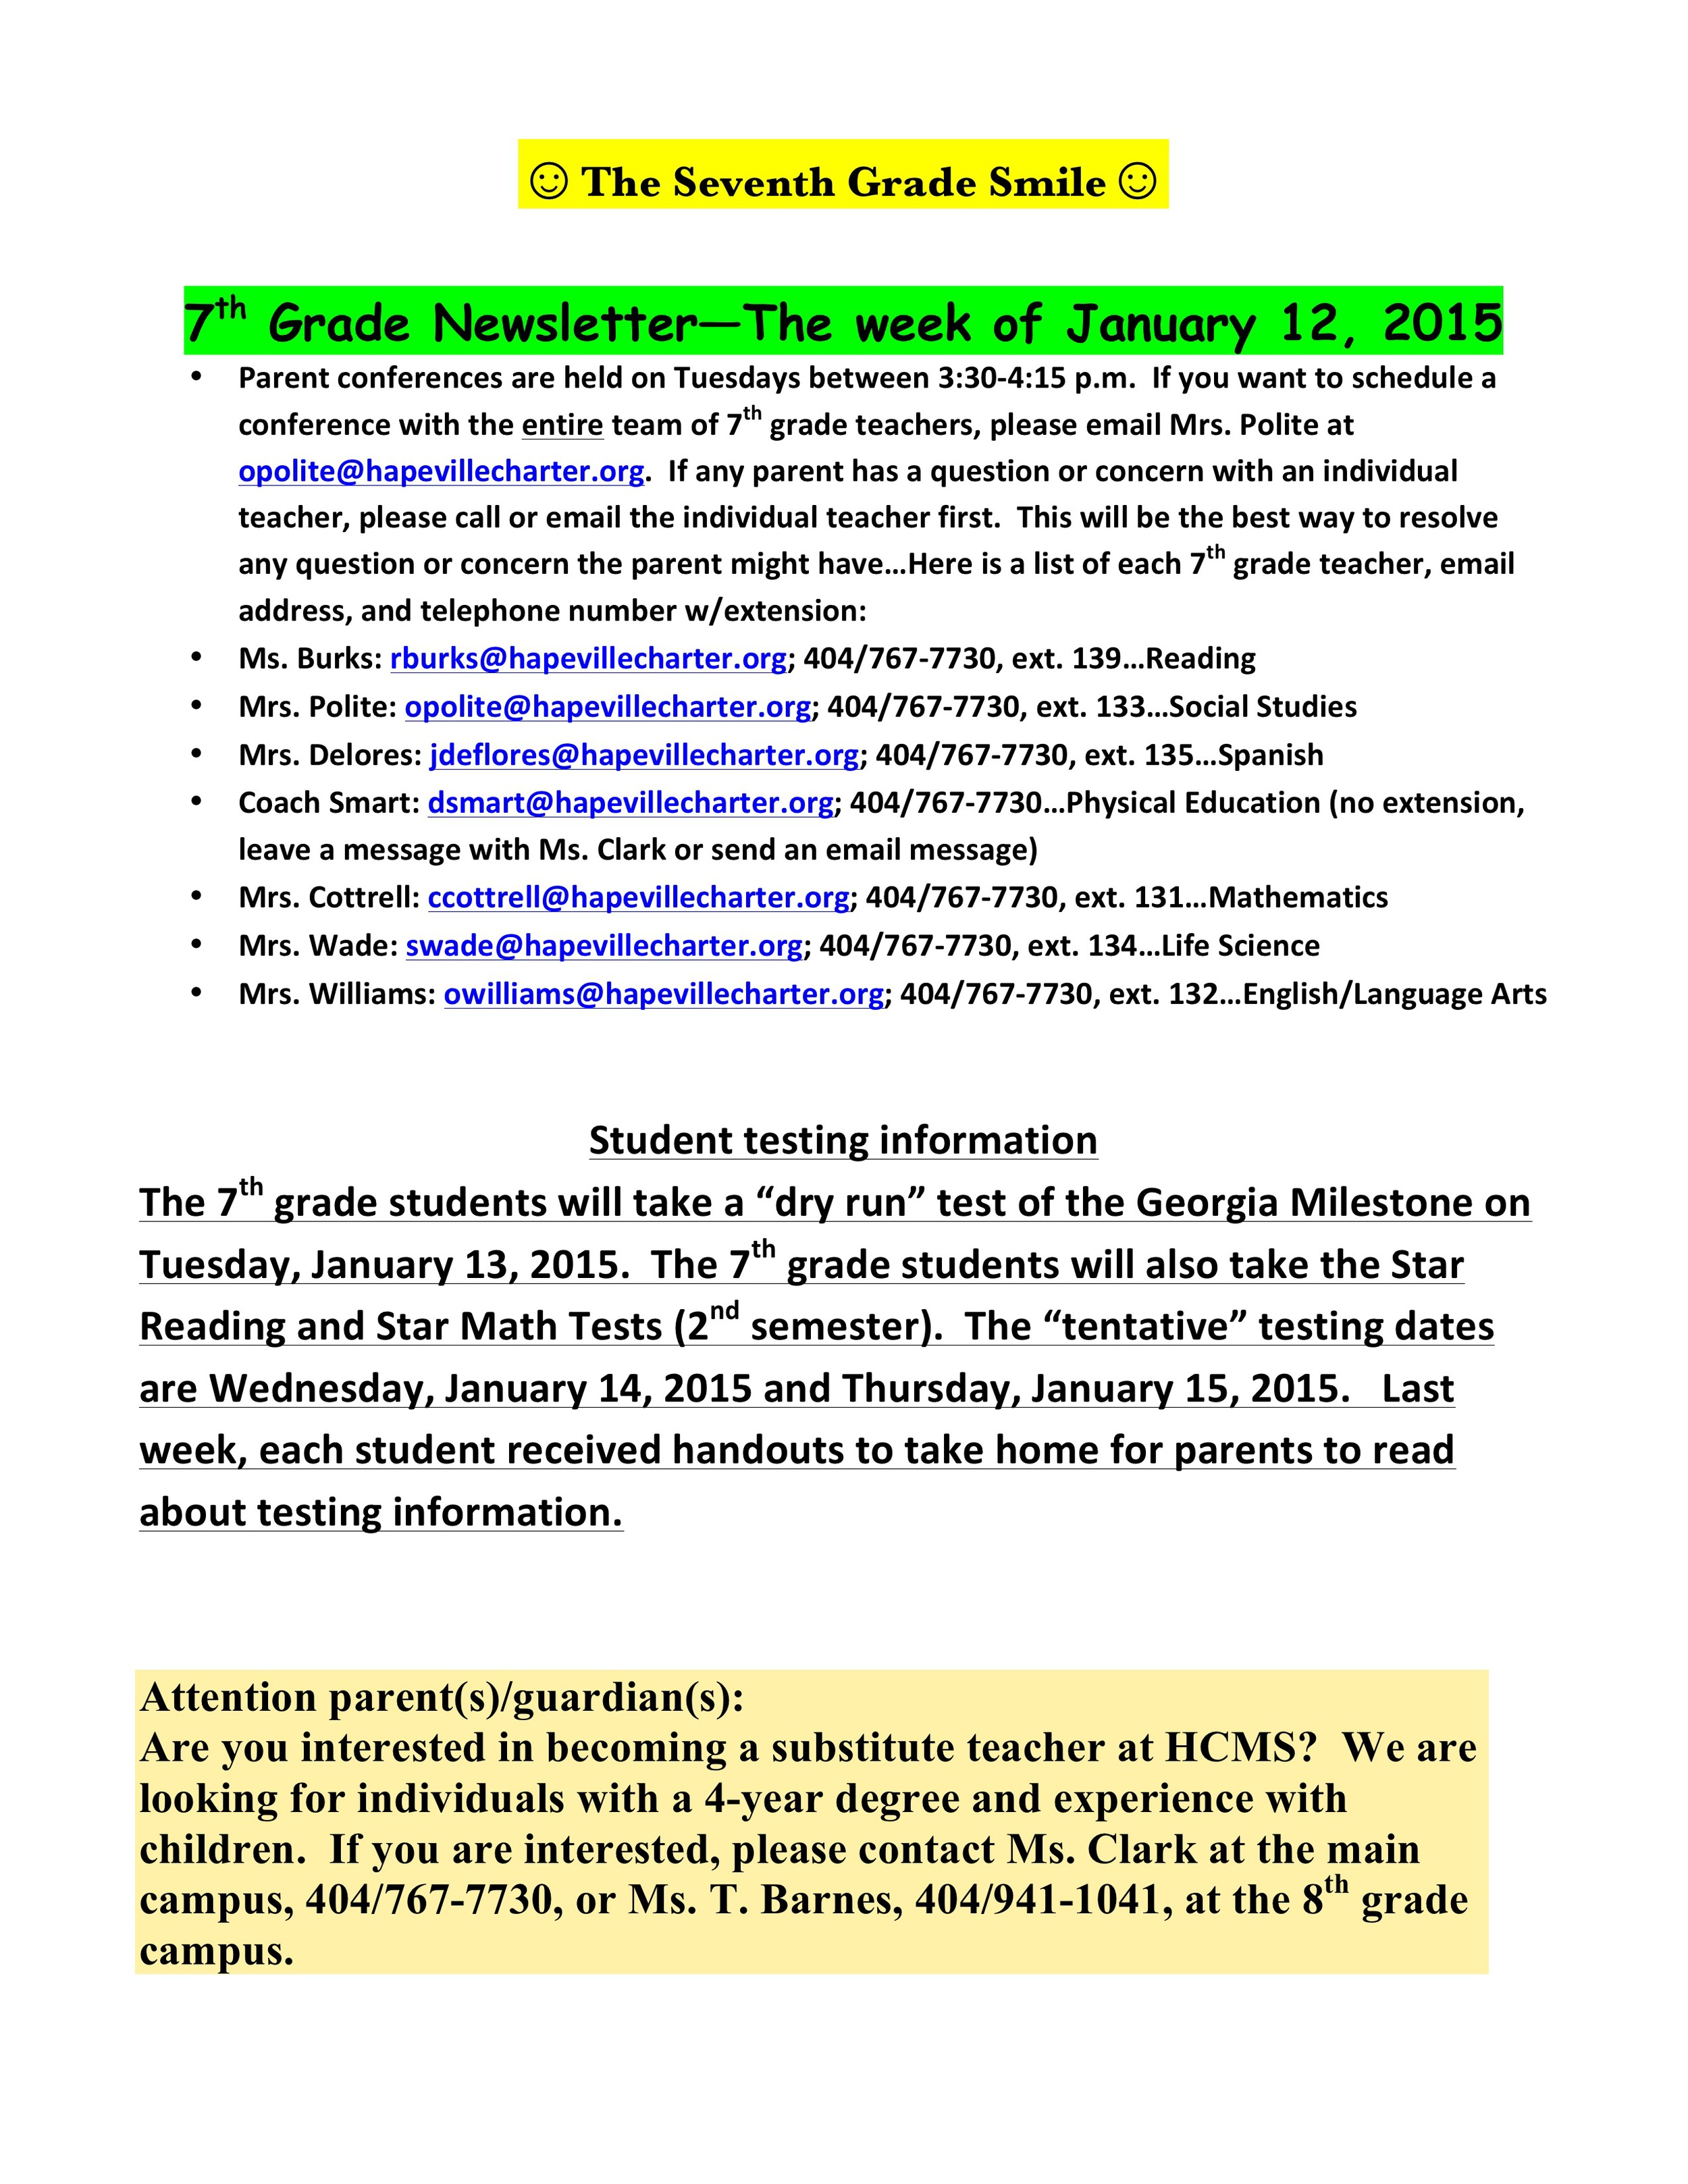 Newsletter Image7th grade January 12.jpeg